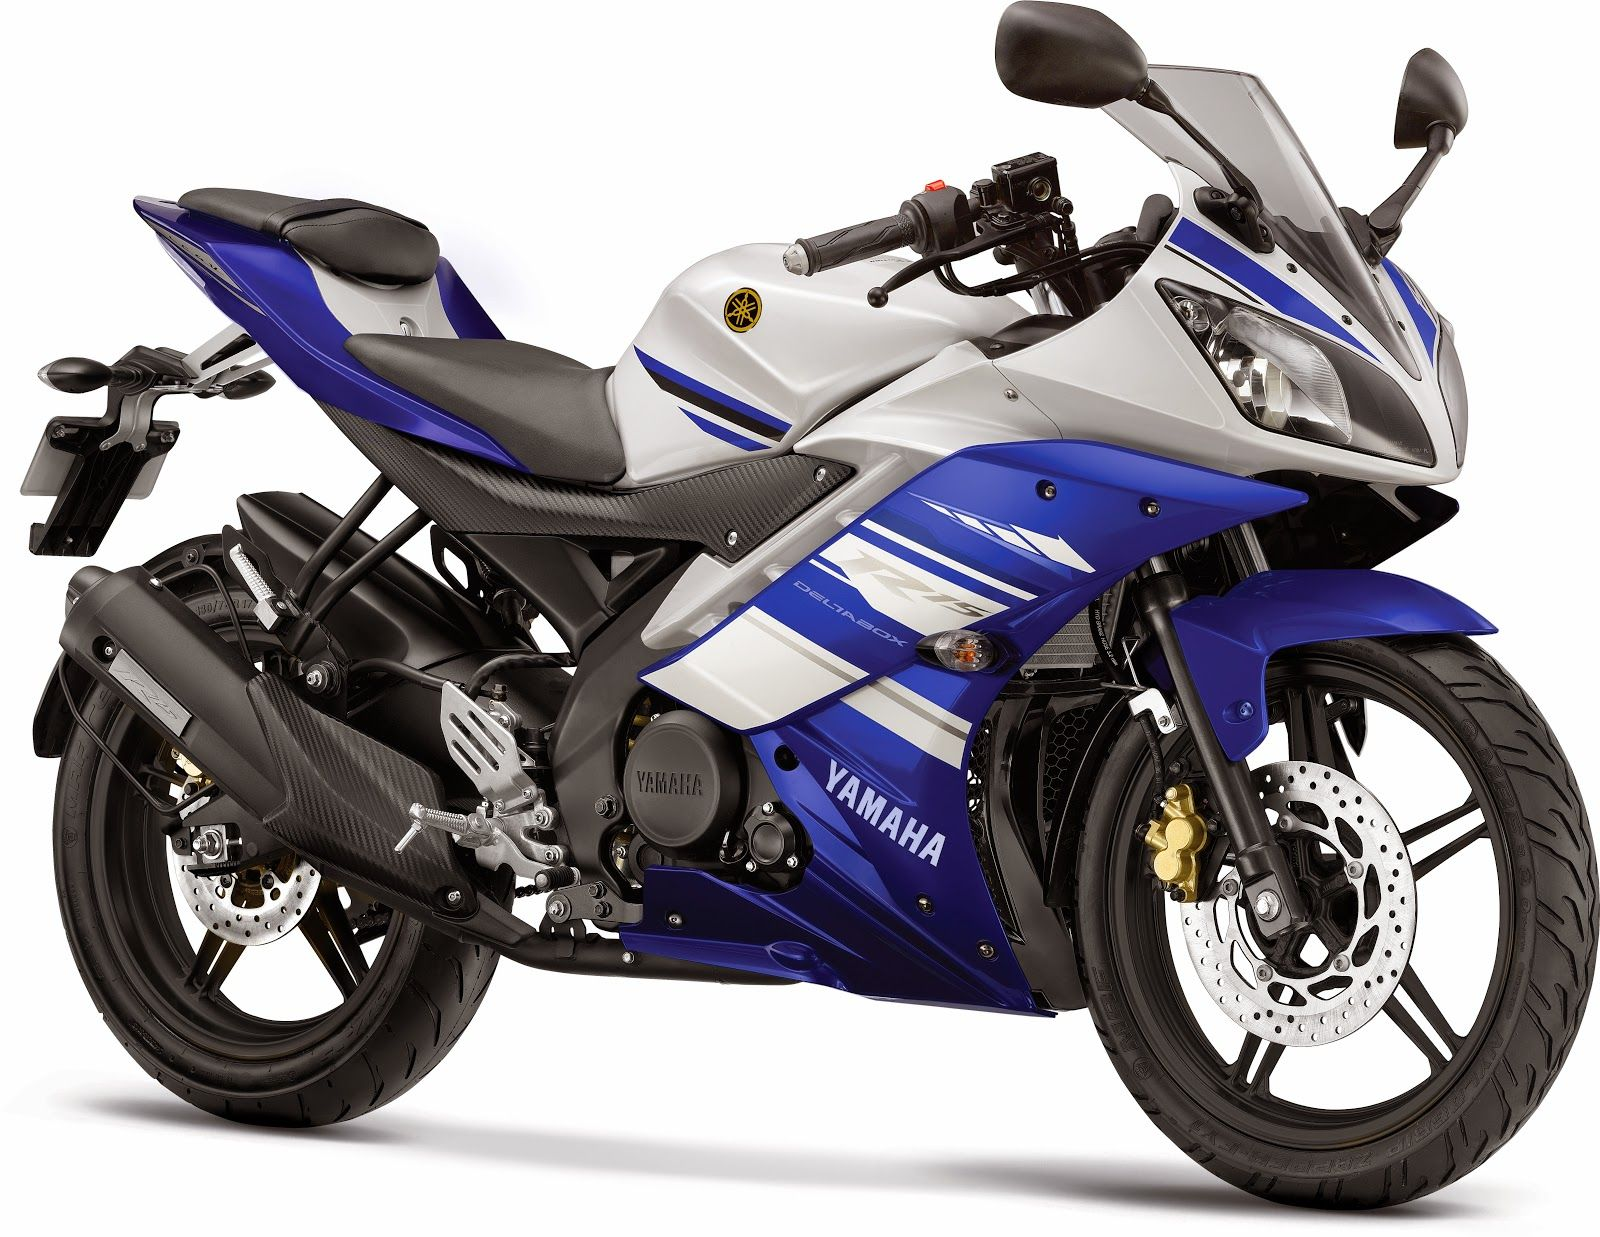 Top 5 150cc 160cc motorcycles in the country indian cars bikes - Sagmart Motorcycle Blog Latest Updates And More Yamaha 150cc Motorcycles In India